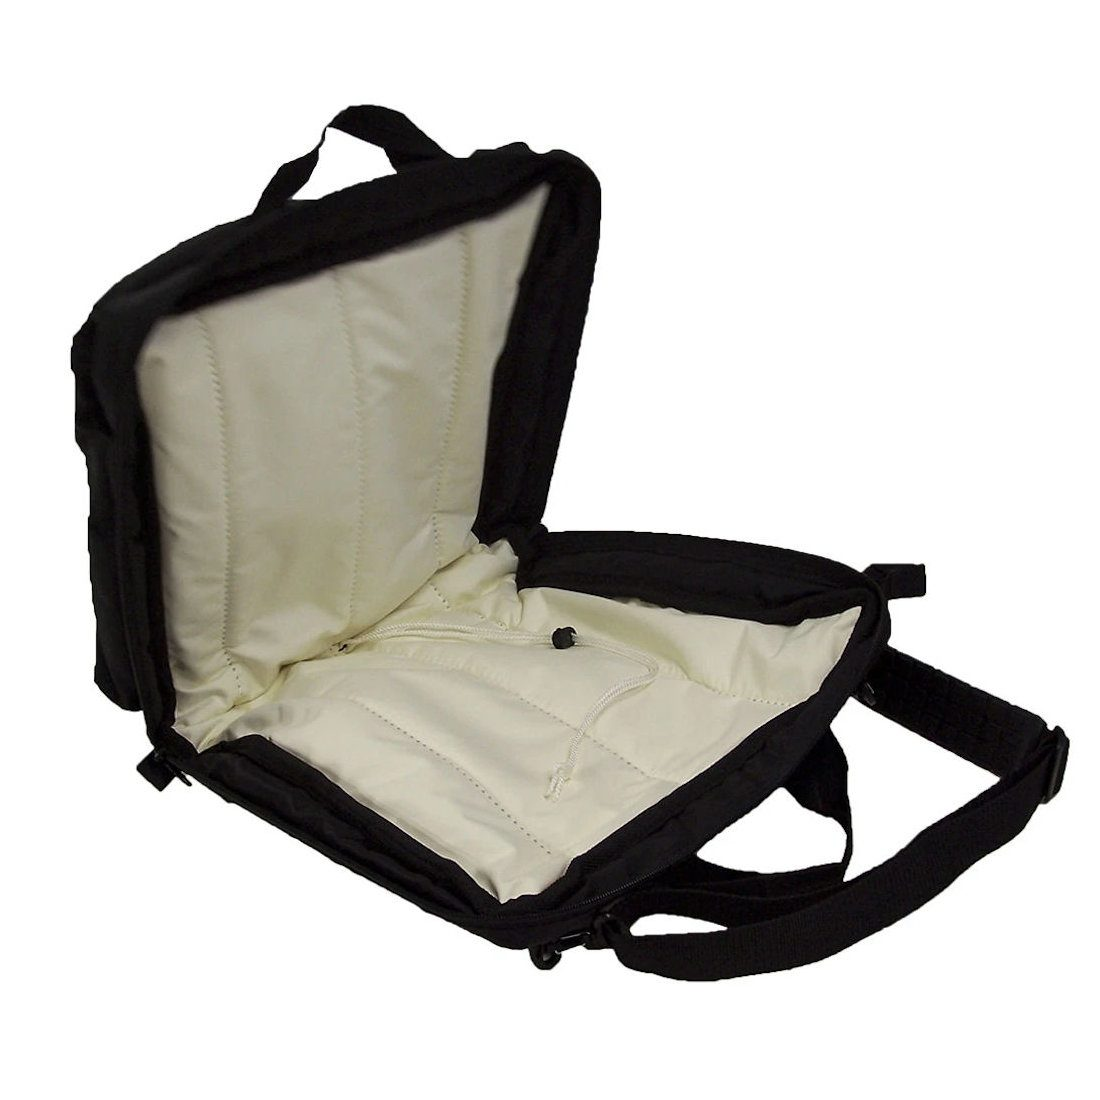 altieri oboe case cover double pocket inside view obdp